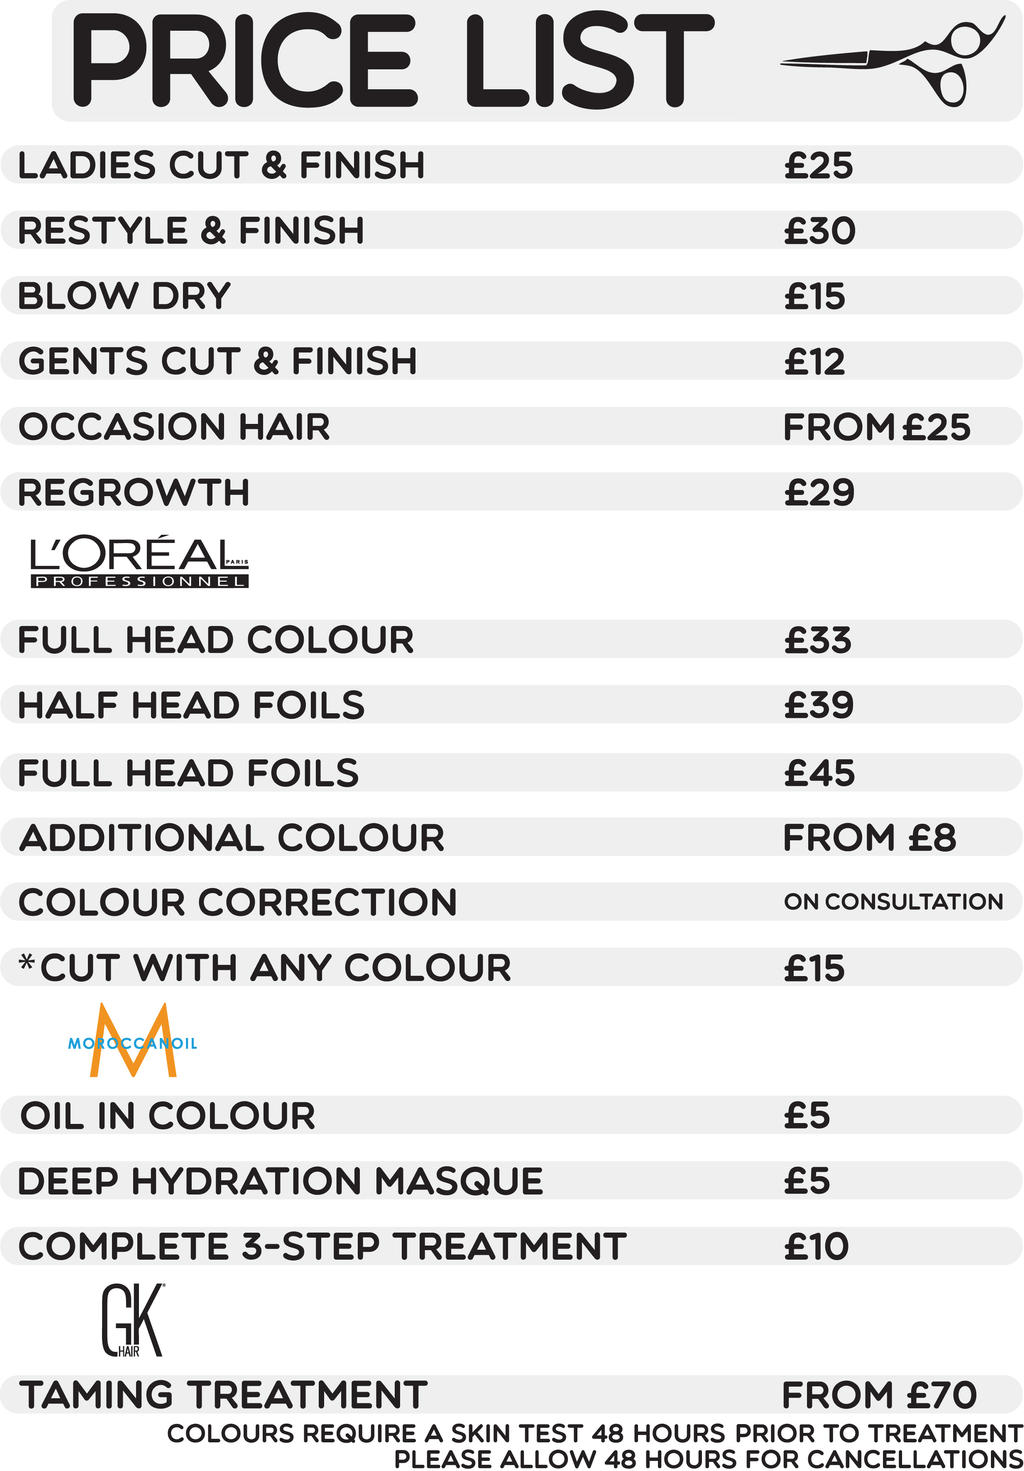 Hairdressing Pricelist By Xcalloomx On Deviantart